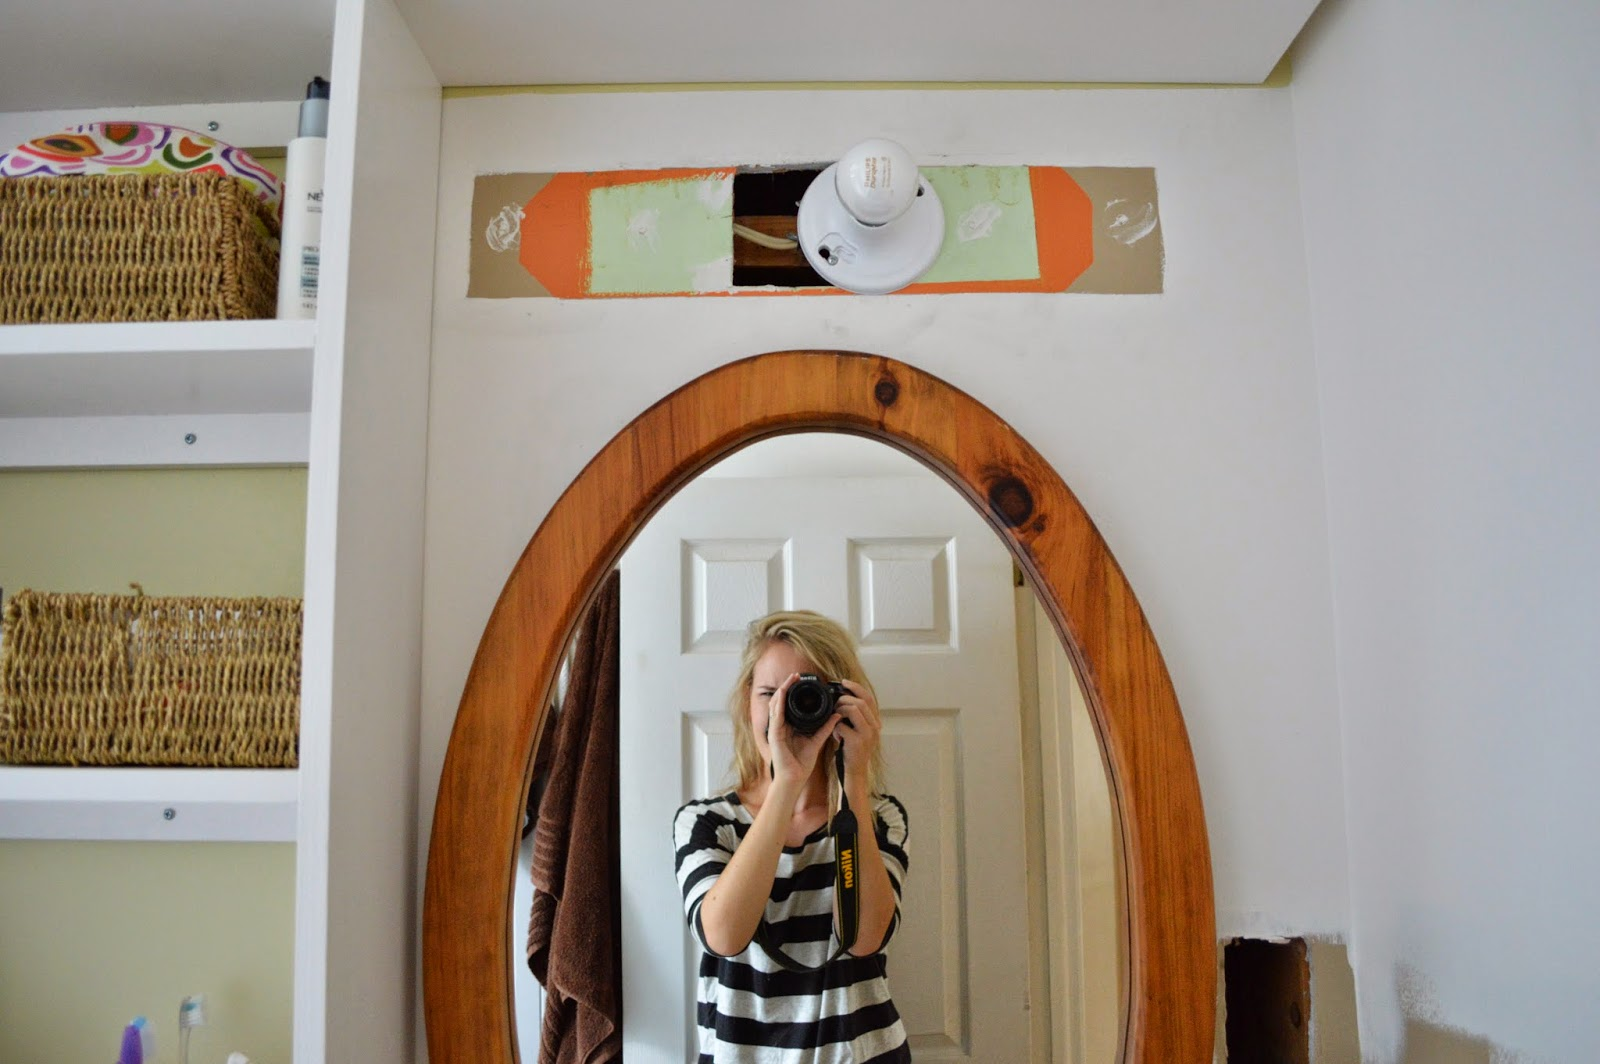 Off center bathroom light fixture - I Guess I M Feeling More Centered These Days Other Than The Shower Tub System The Mirror Is The Only Original Item We Have Kept